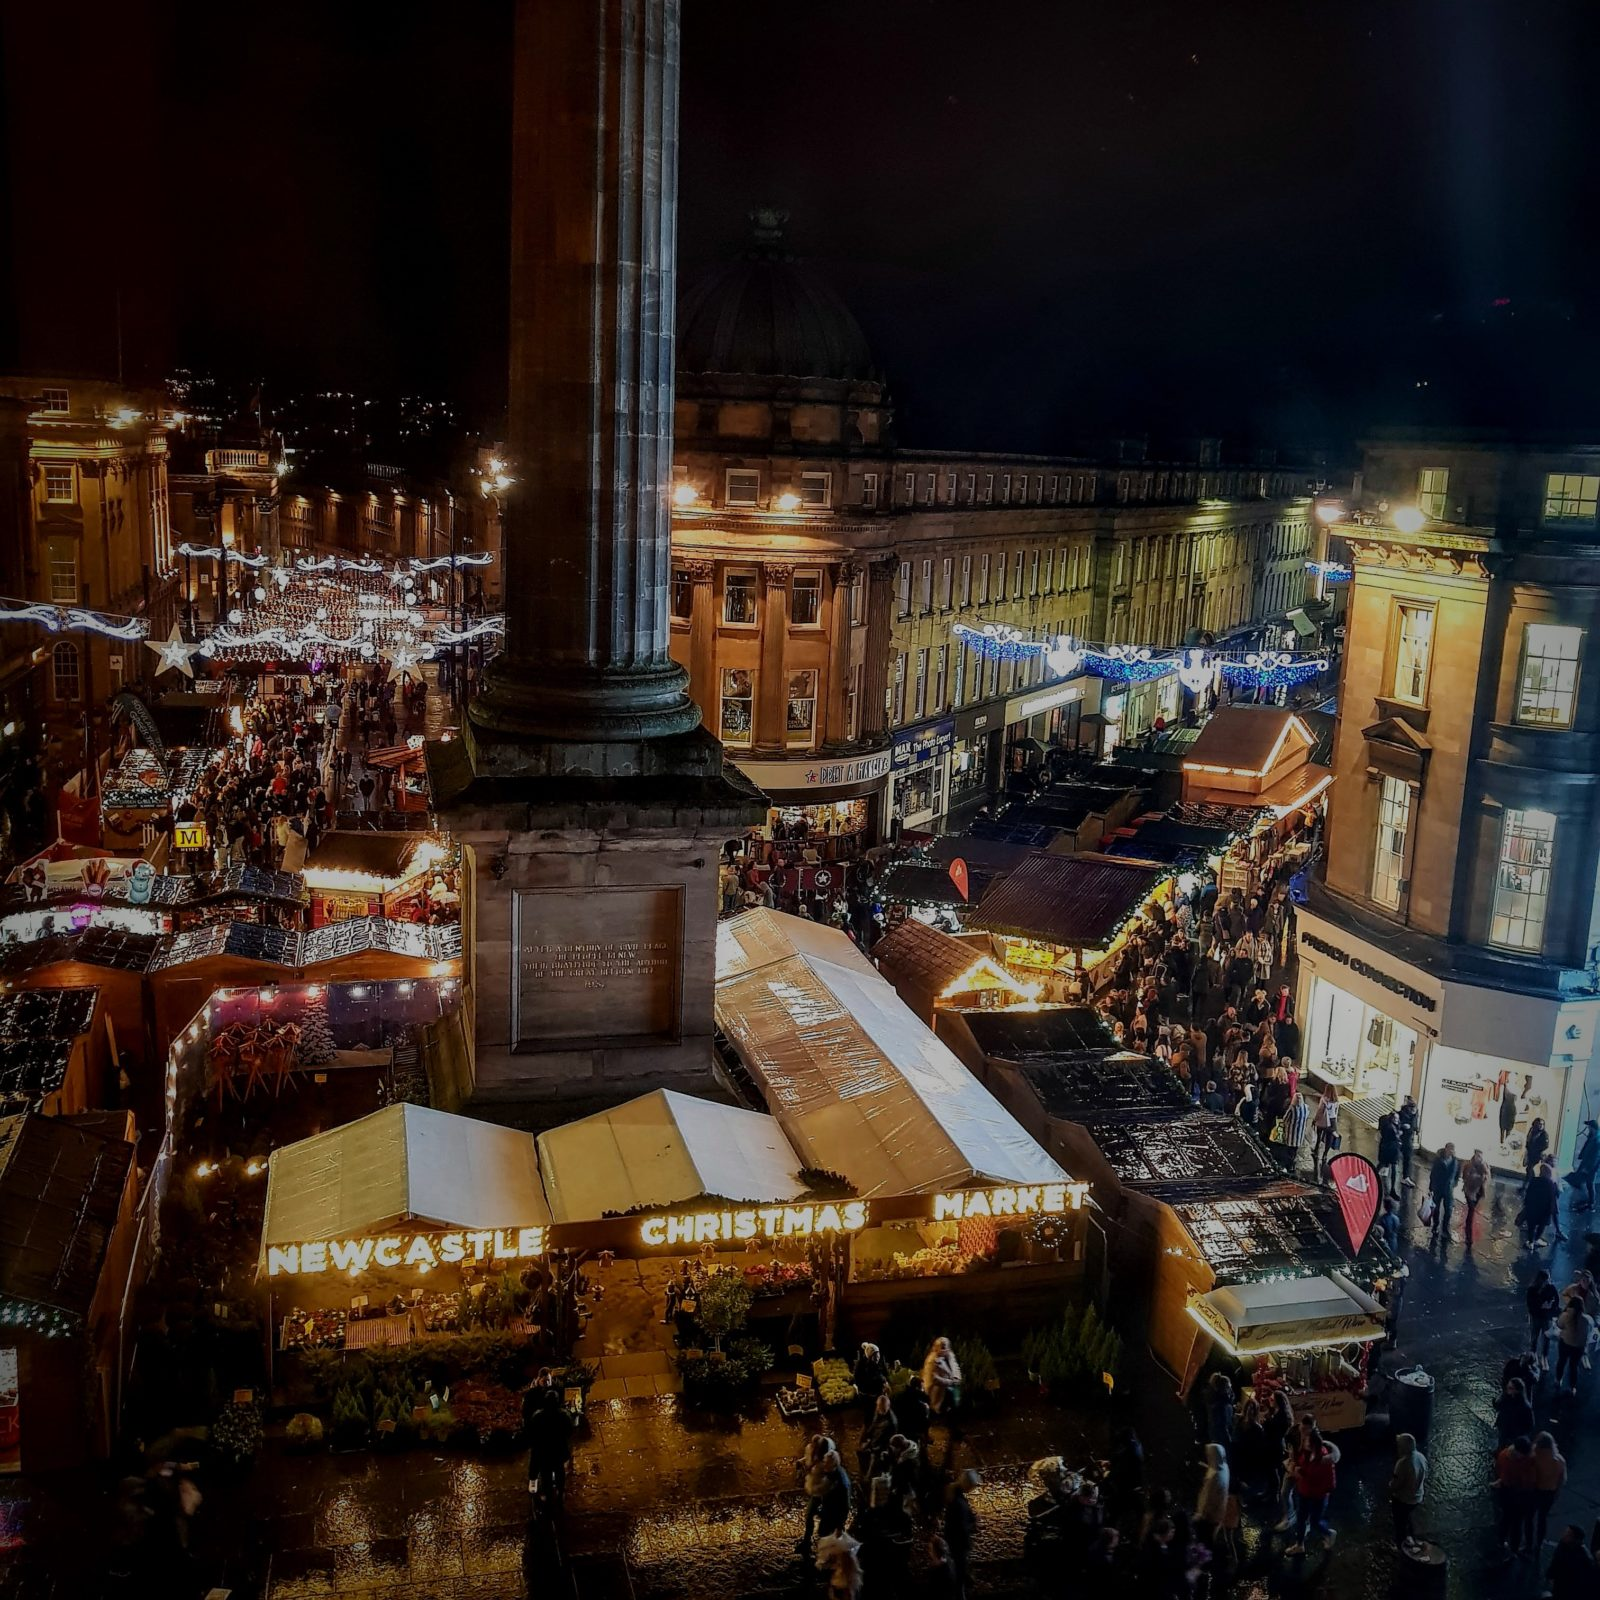 view of the festive market in newcastle from the botanist